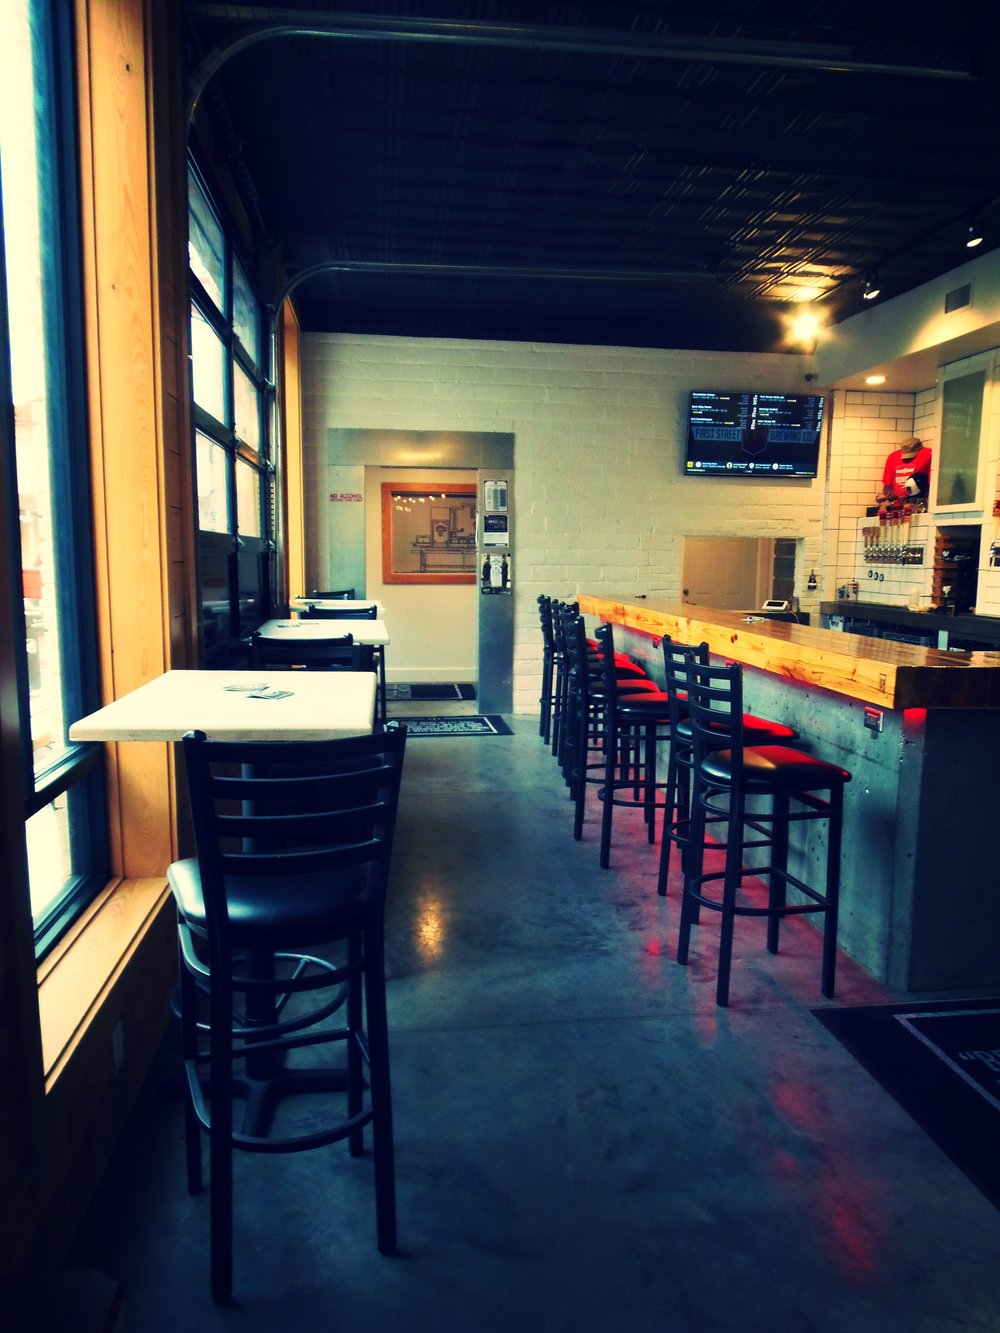 Such a warm and inviting taproom. It is hard to believe this was once an automotive shop.